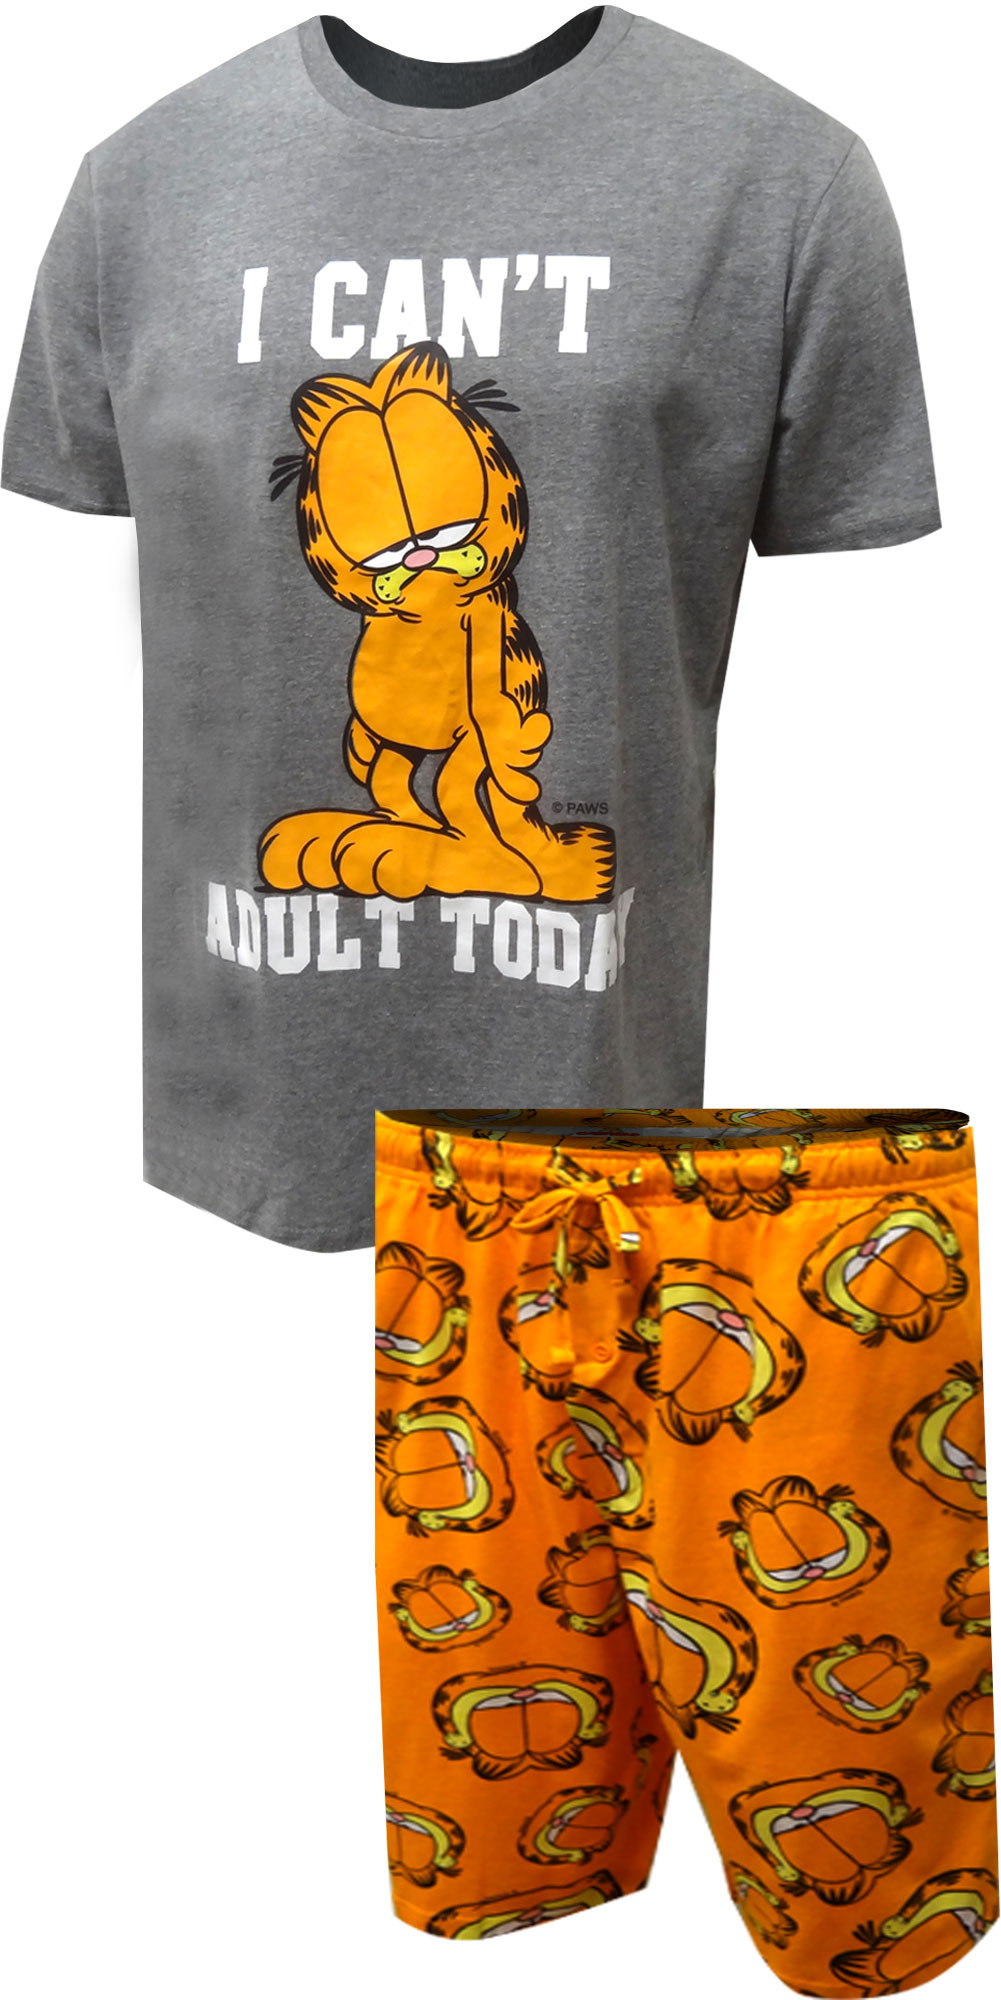 Image of Garfield I Can't Adult Today Pajama for men